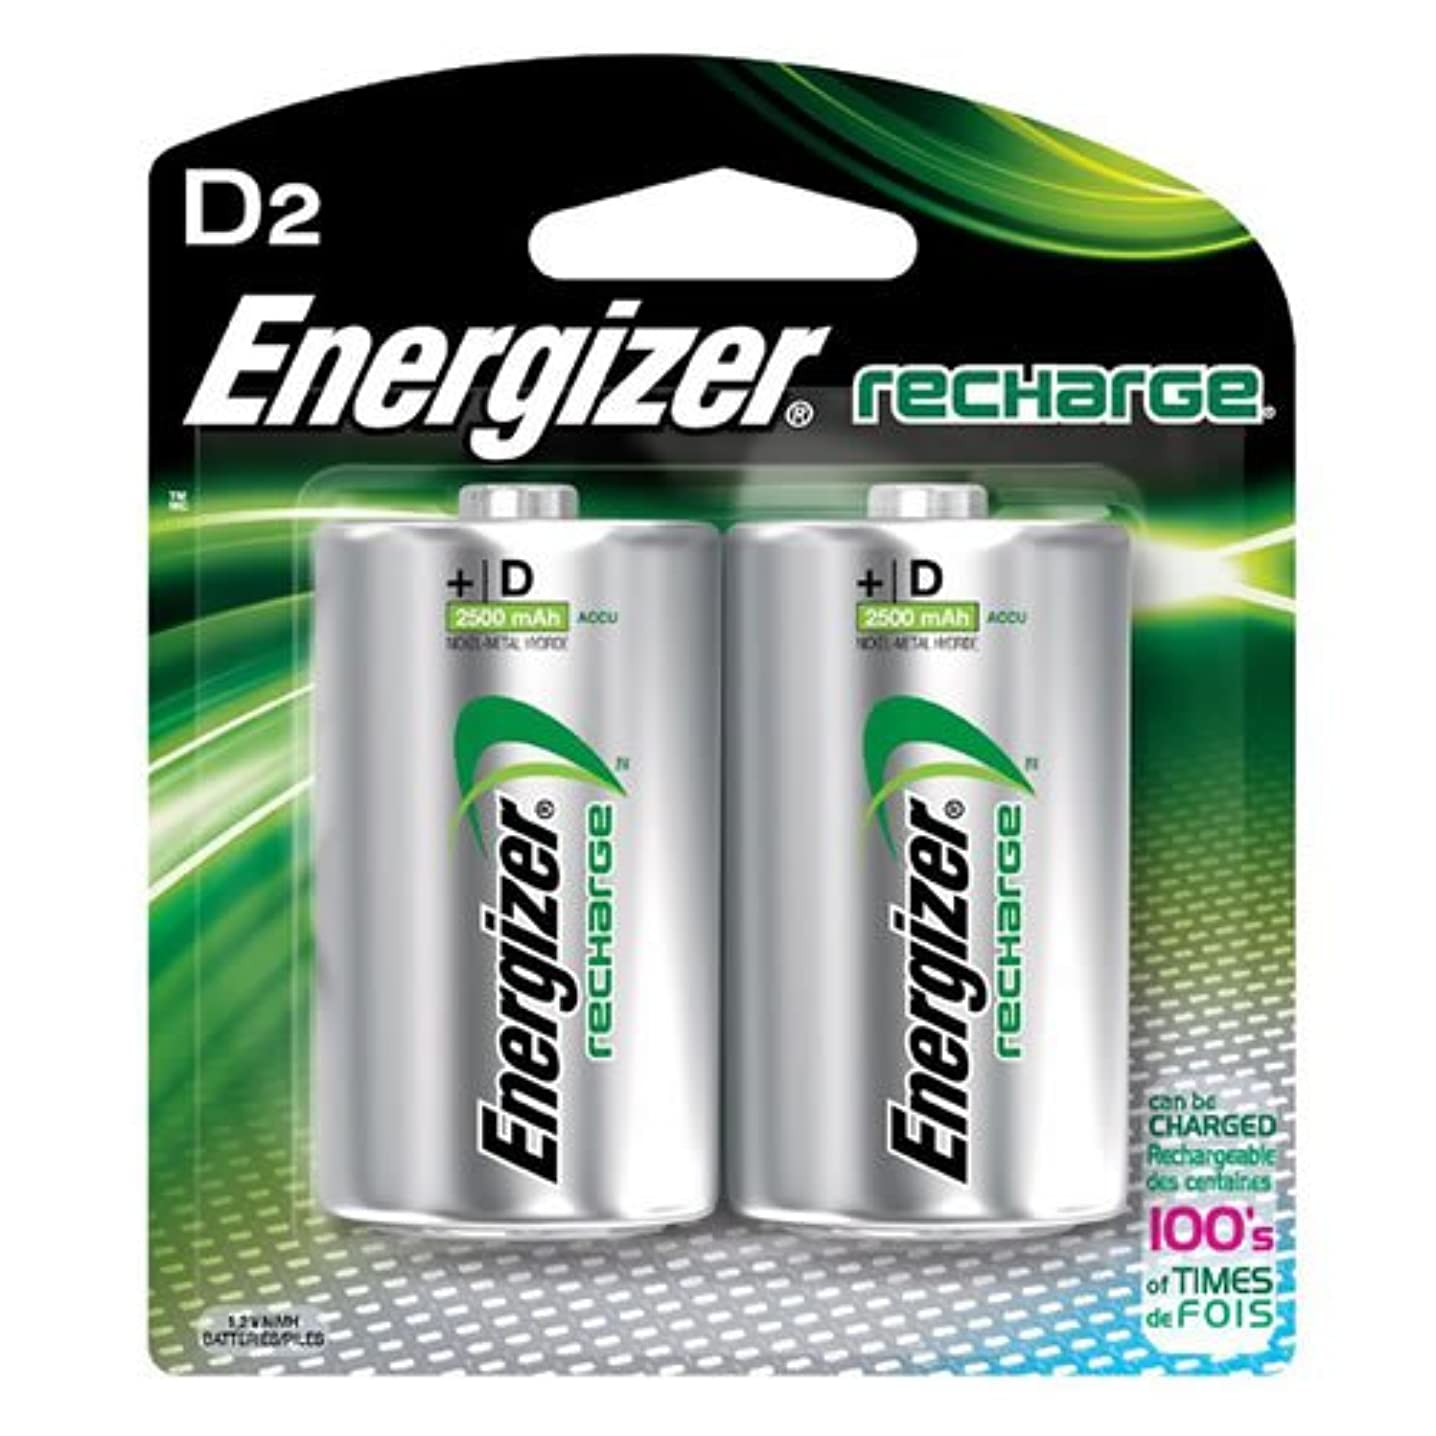 Energizer NH50BP2 NiMH Rechargeable Batteries, D, 2 Batteries/Pack